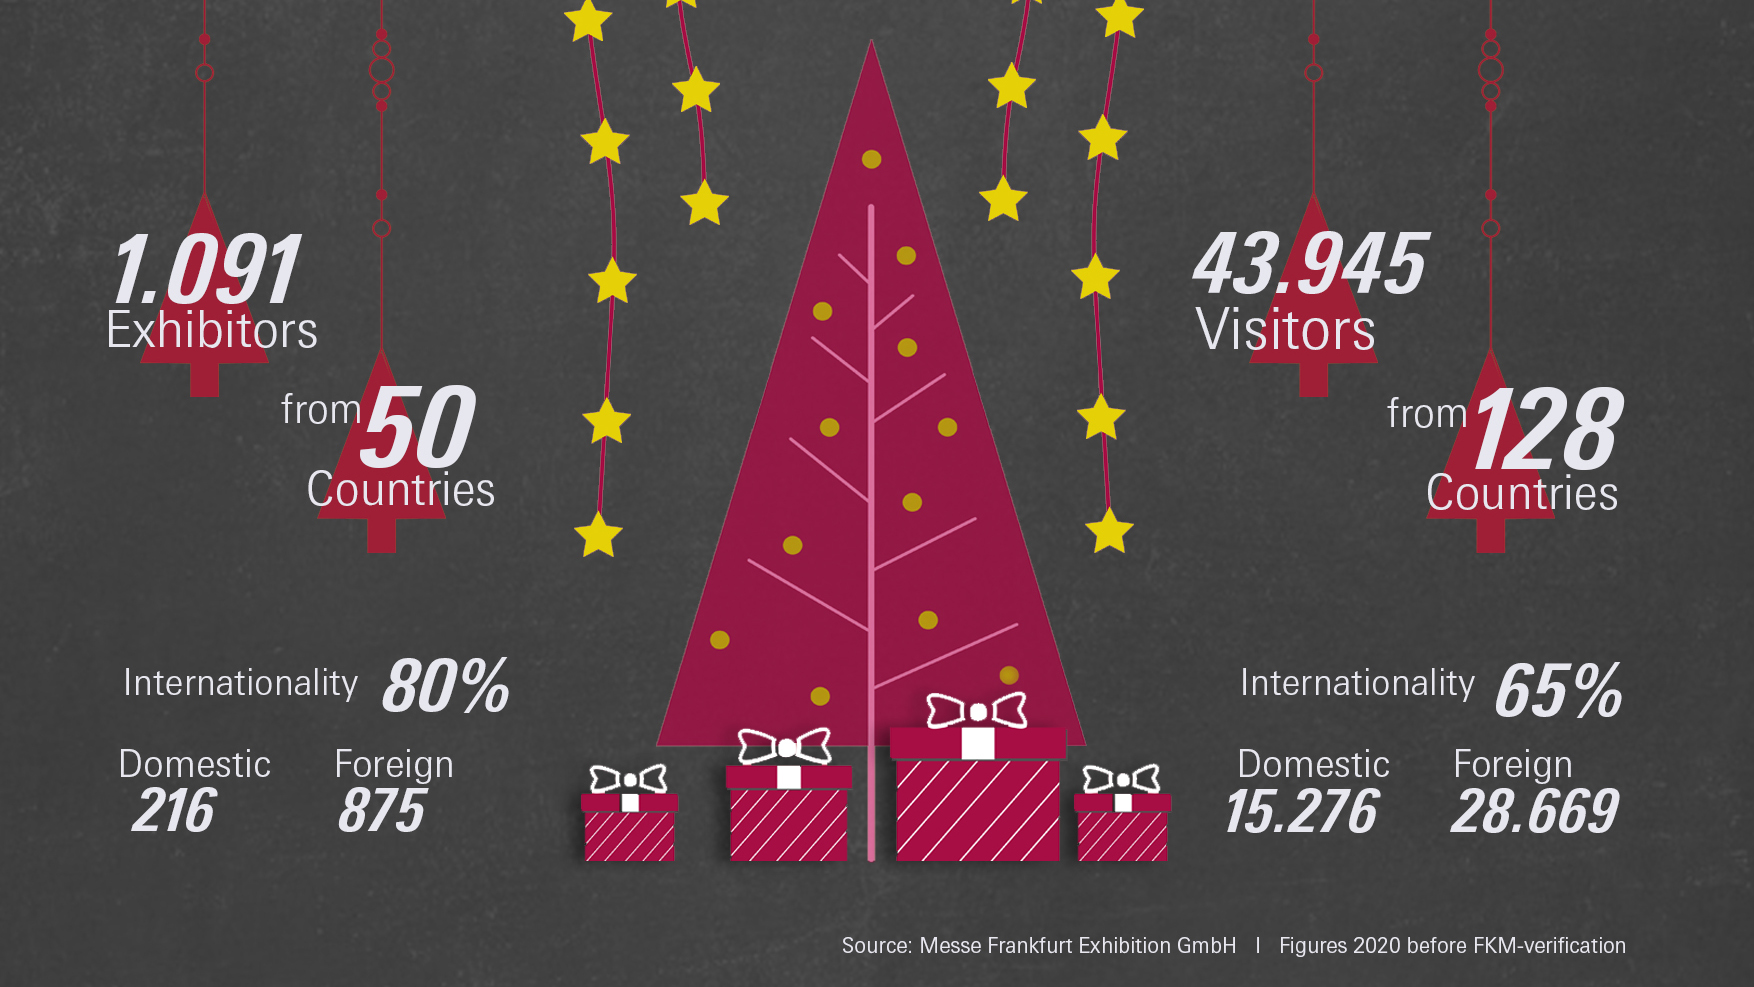 numbers exhibitors and visitors of Christmasworld 2020